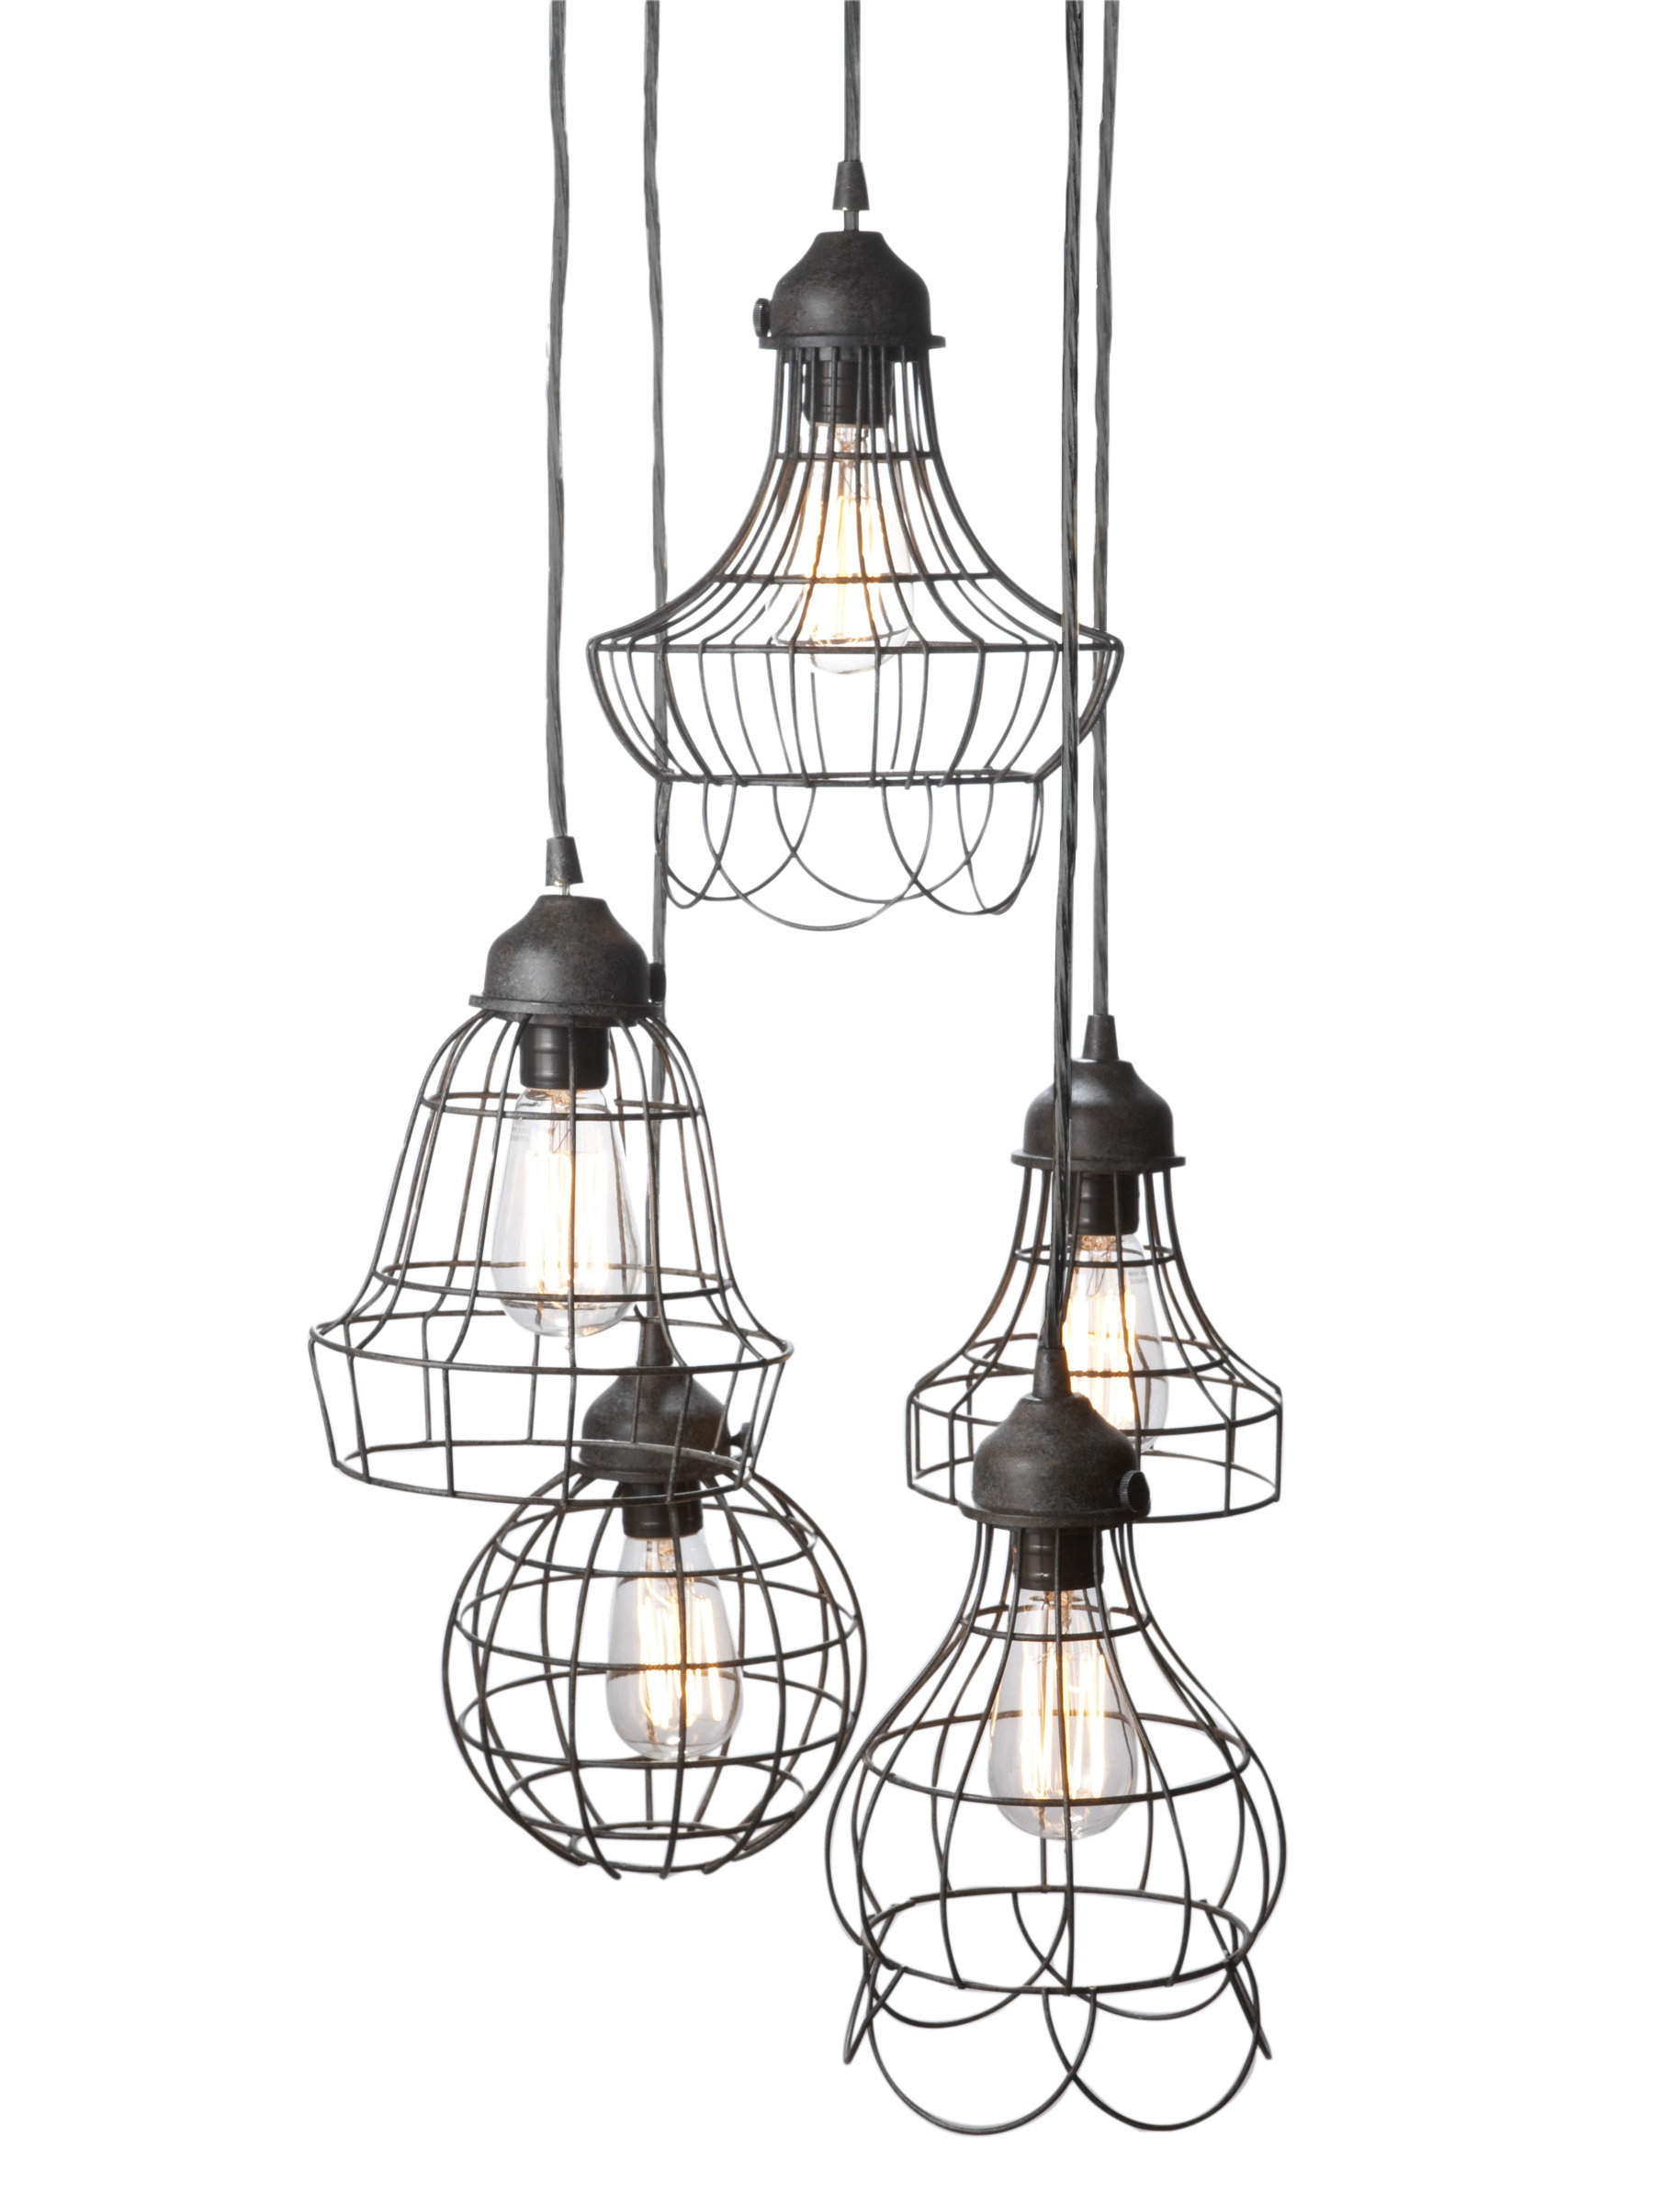 Modern & Contemporary Basket Pendant | Allmodern Intended For Bryker 1 Light Single Bulb Pendants (View 18 of 30)